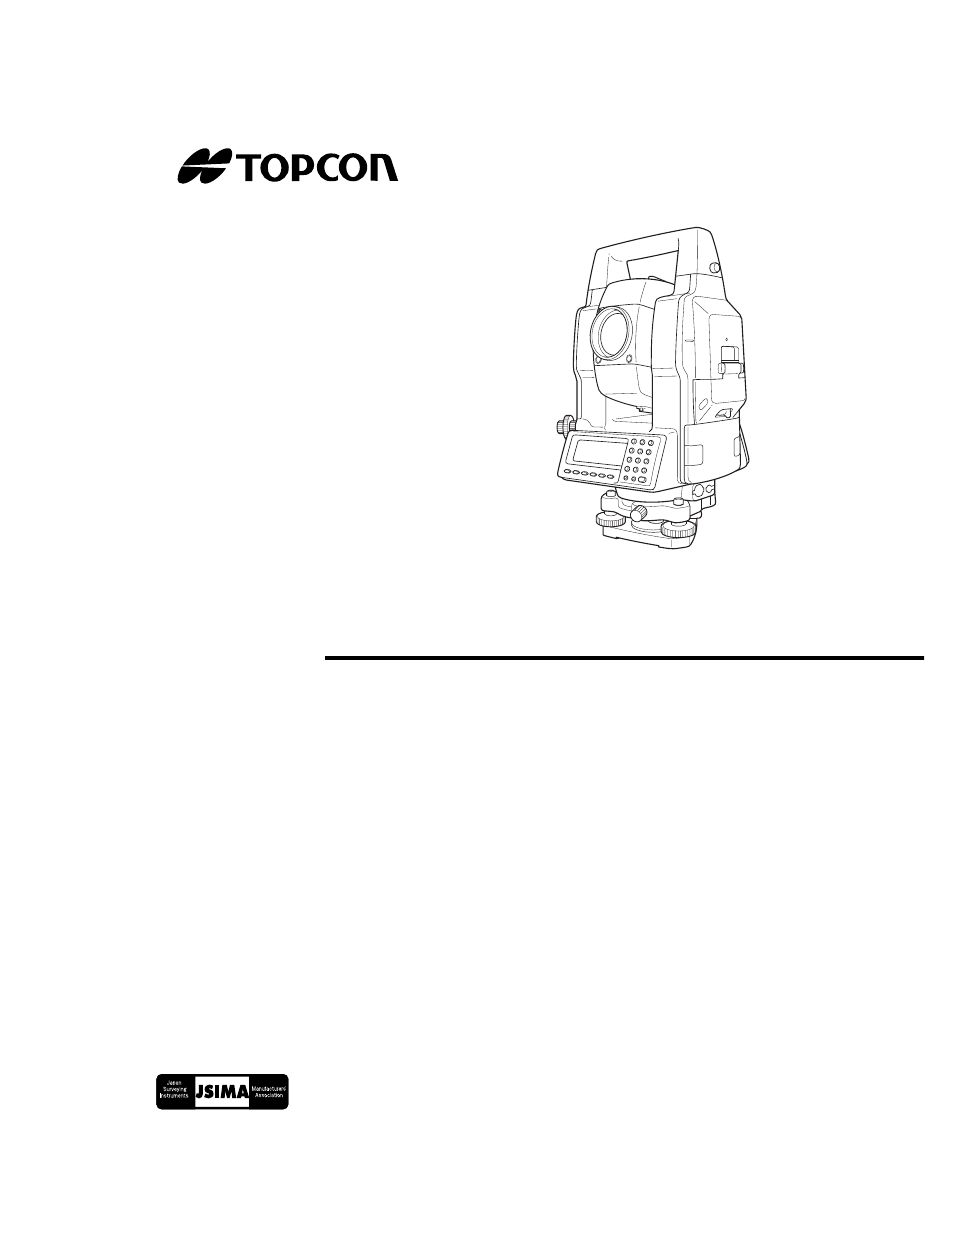 ... Array - topcon gts 823a user manual 144 pages also for gts 825a gts rh  manualsdir